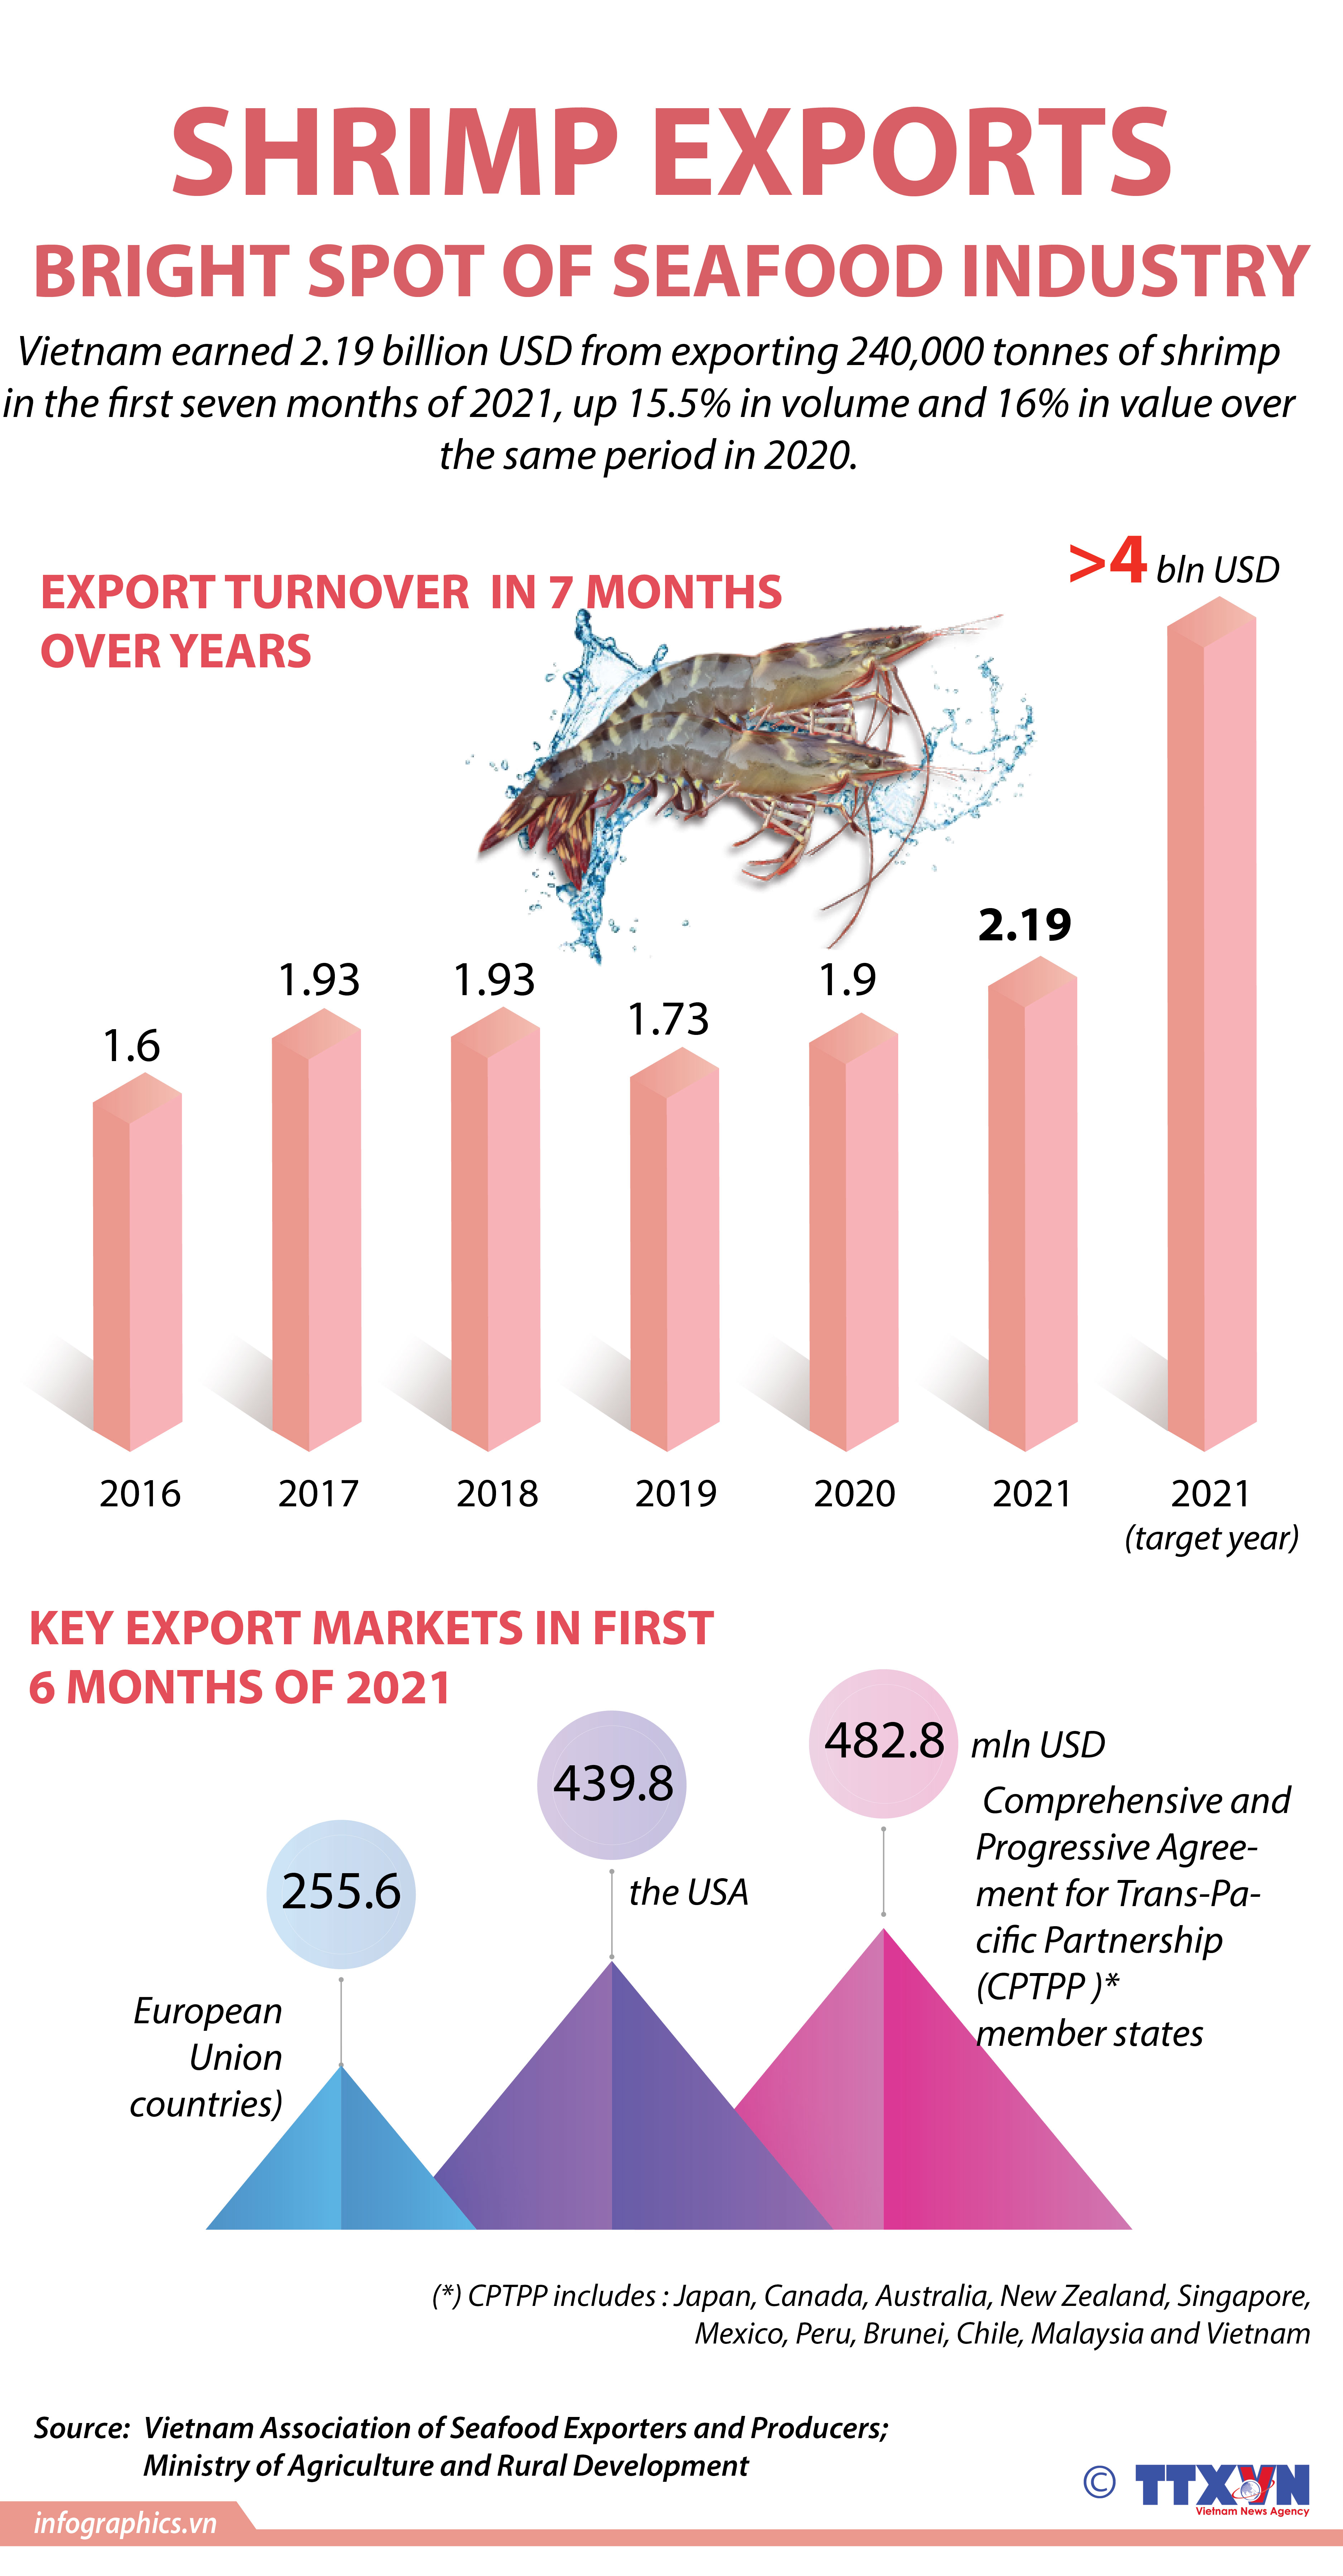 Shrimp exports - bright spot of seafood industry